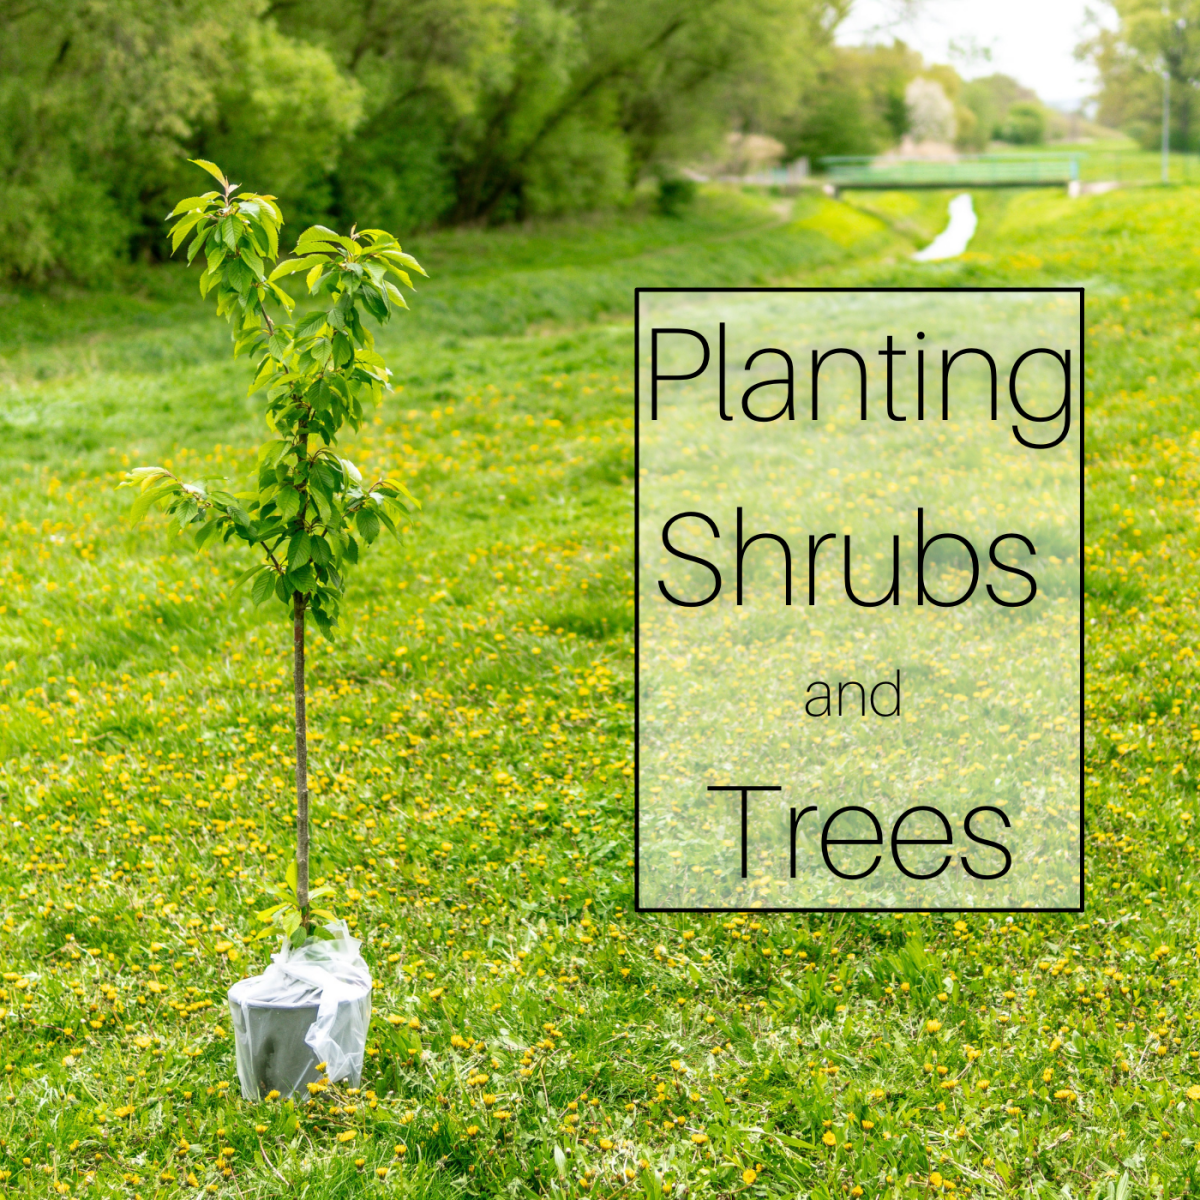 Planting shrubs and trees.